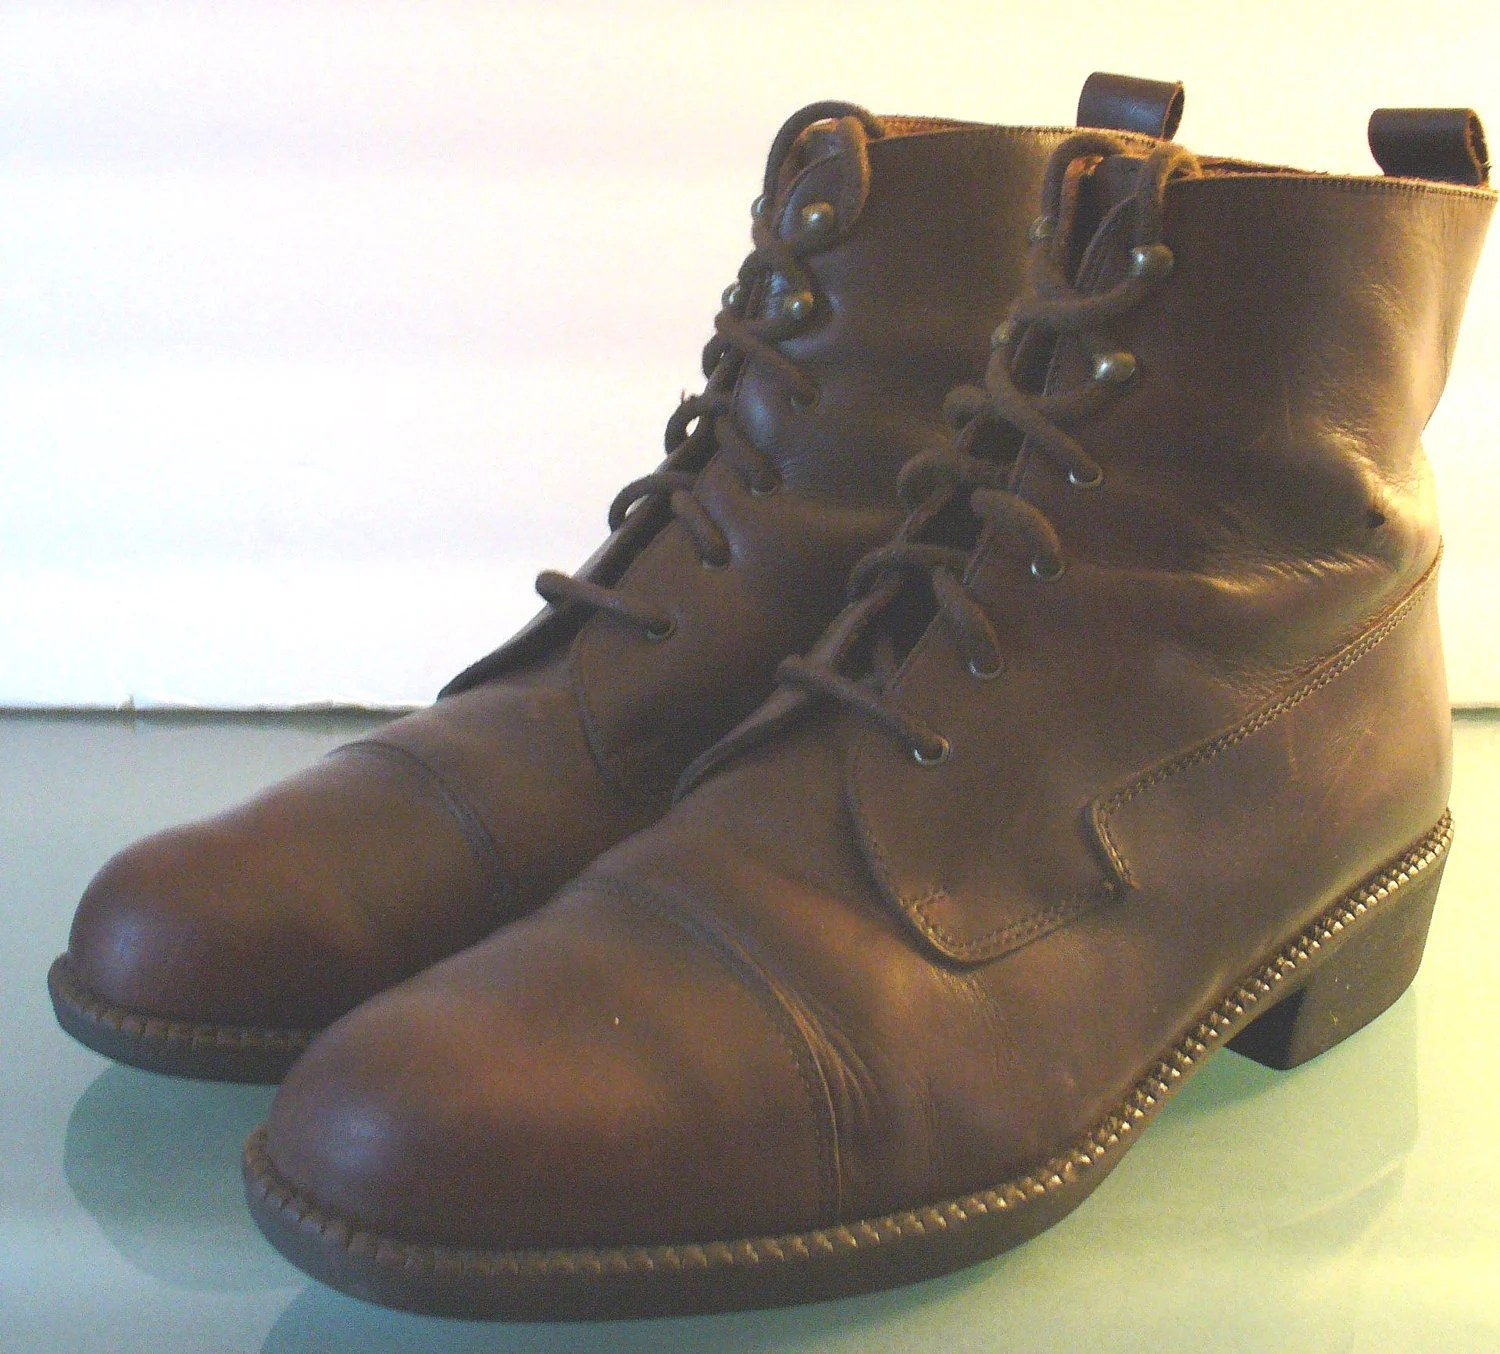 Vintage Eddie Bauer Paddock Boots Made In Italy By